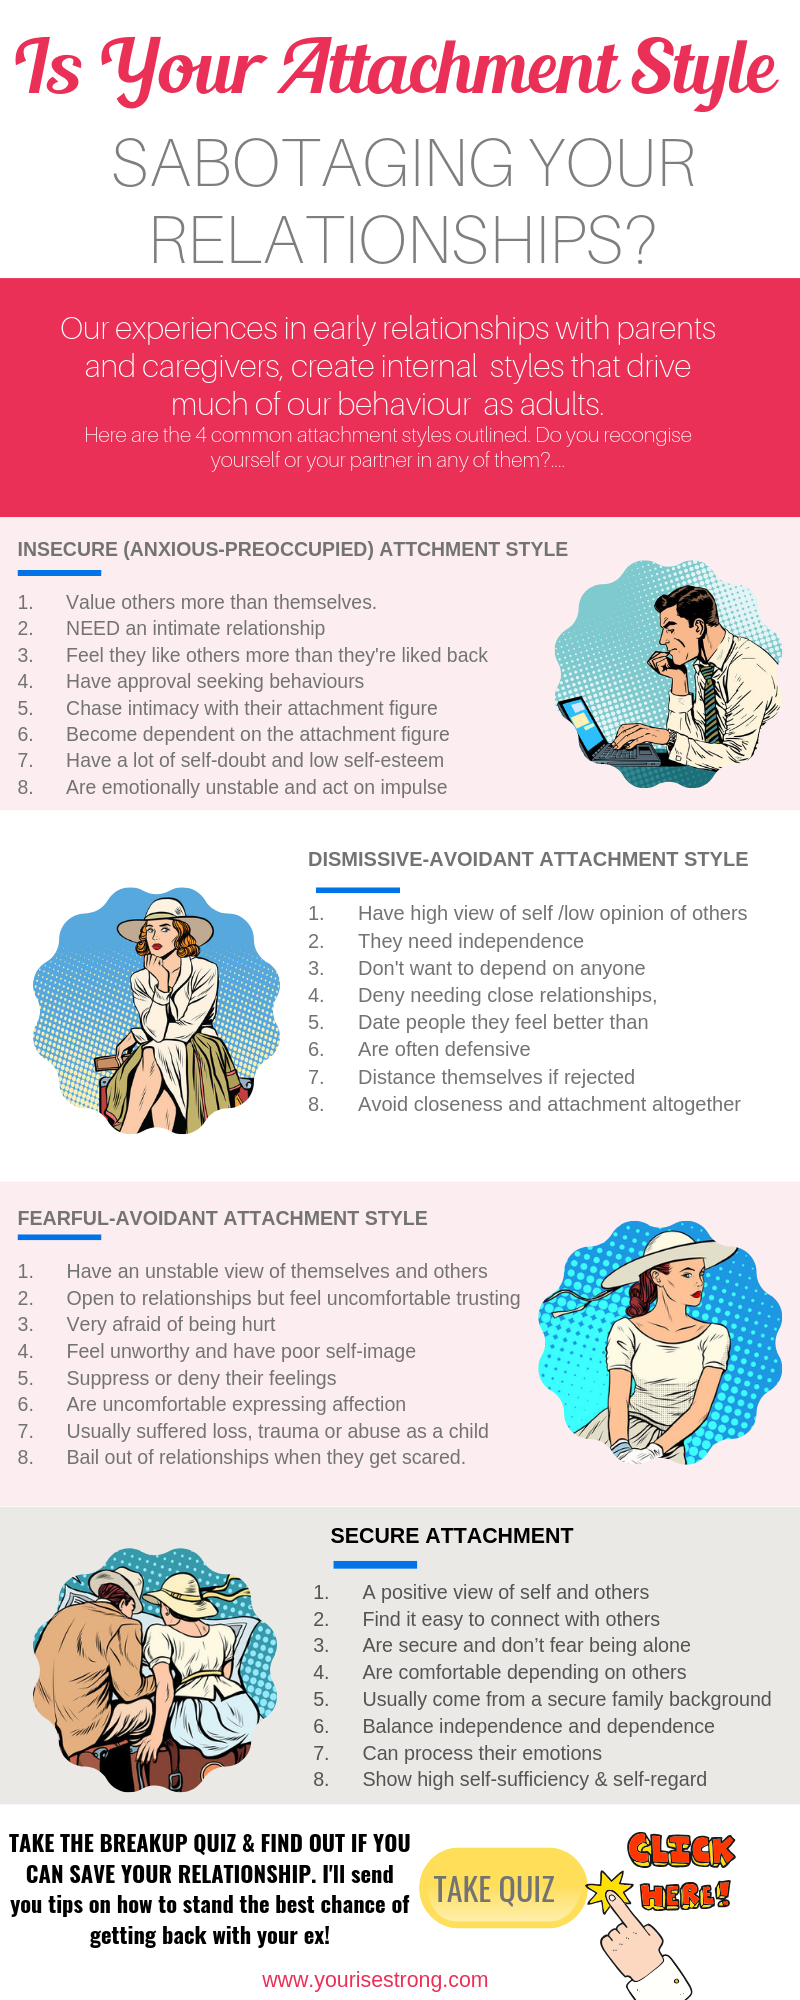 Have you broken up with someone you love? Attachment styles